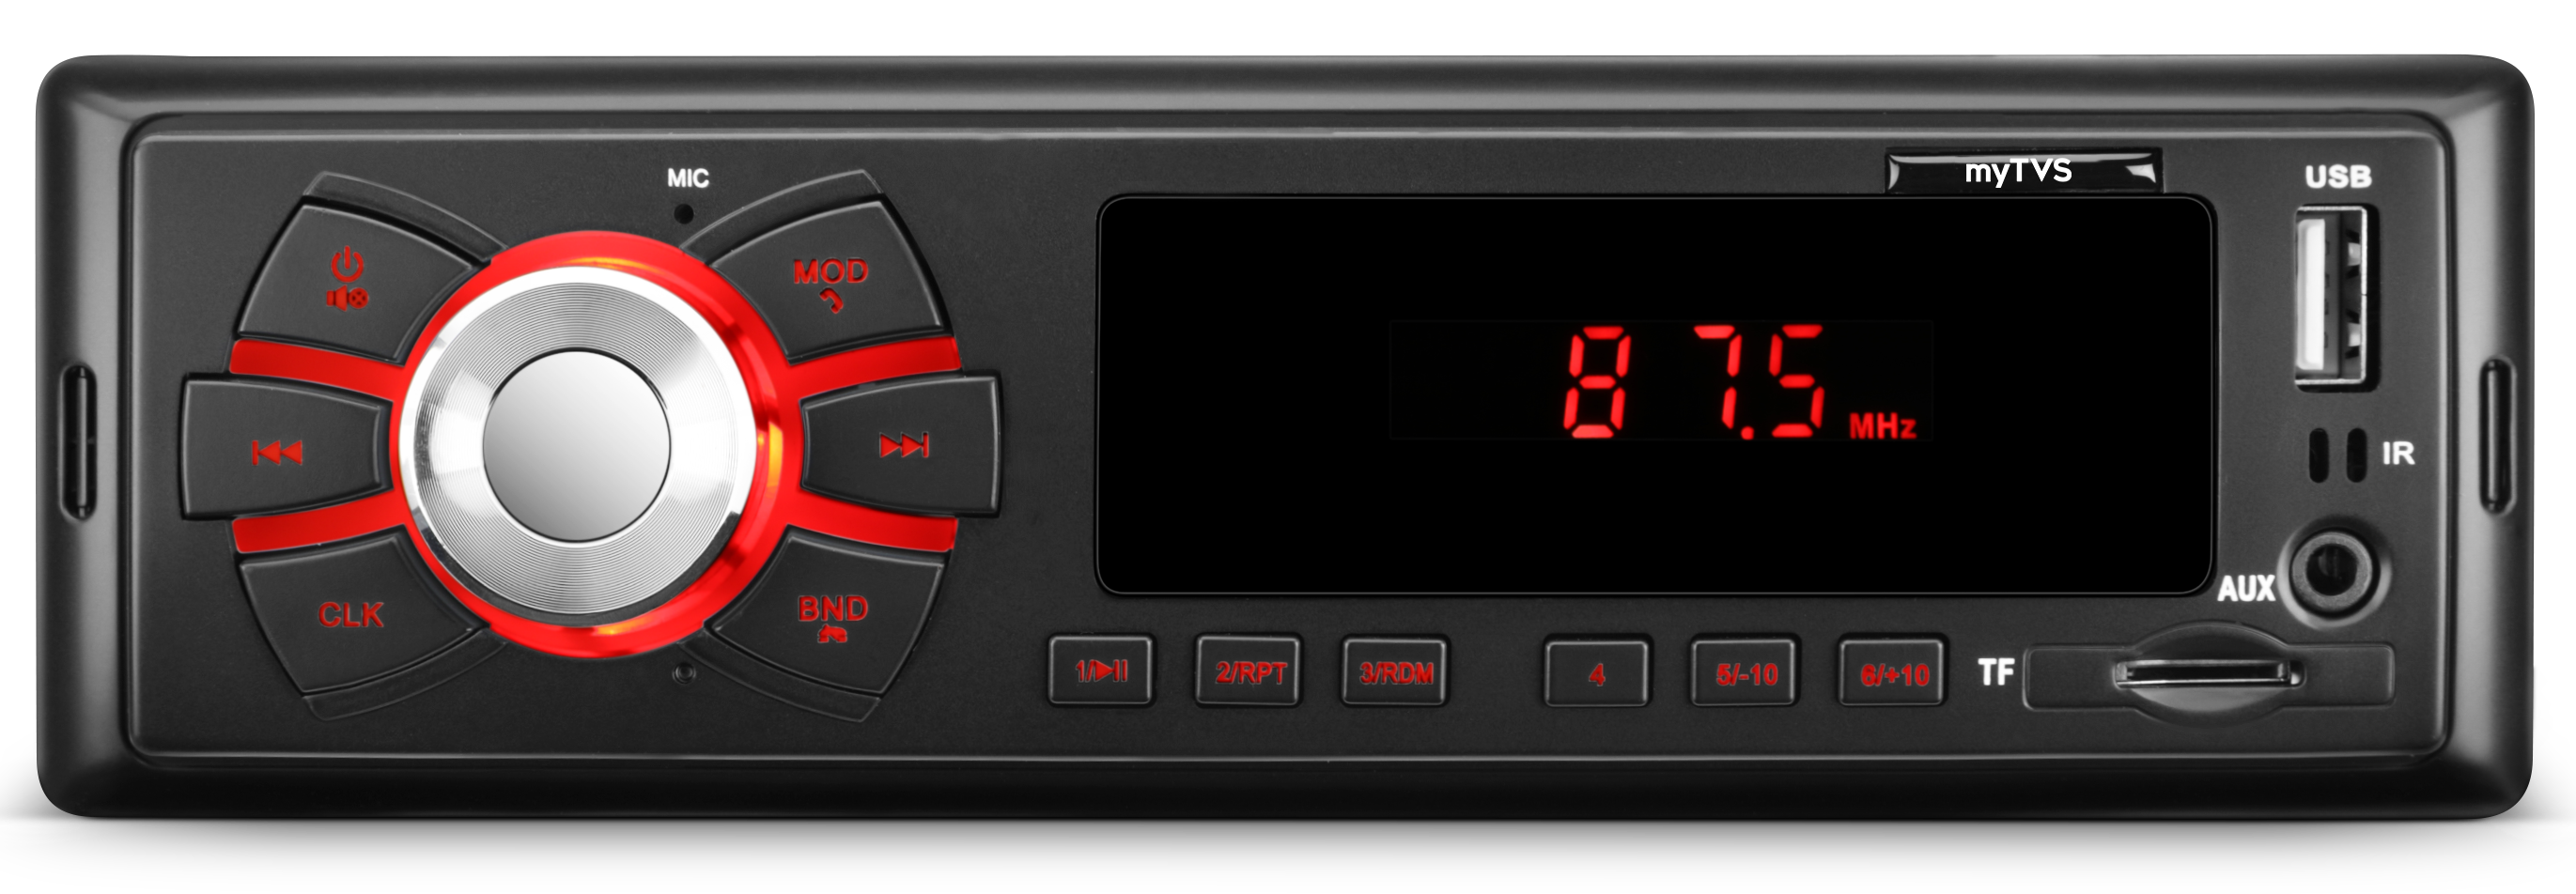 myTVS TMP-55 MP3 Player is the best car stereo player for memorable music in your car.